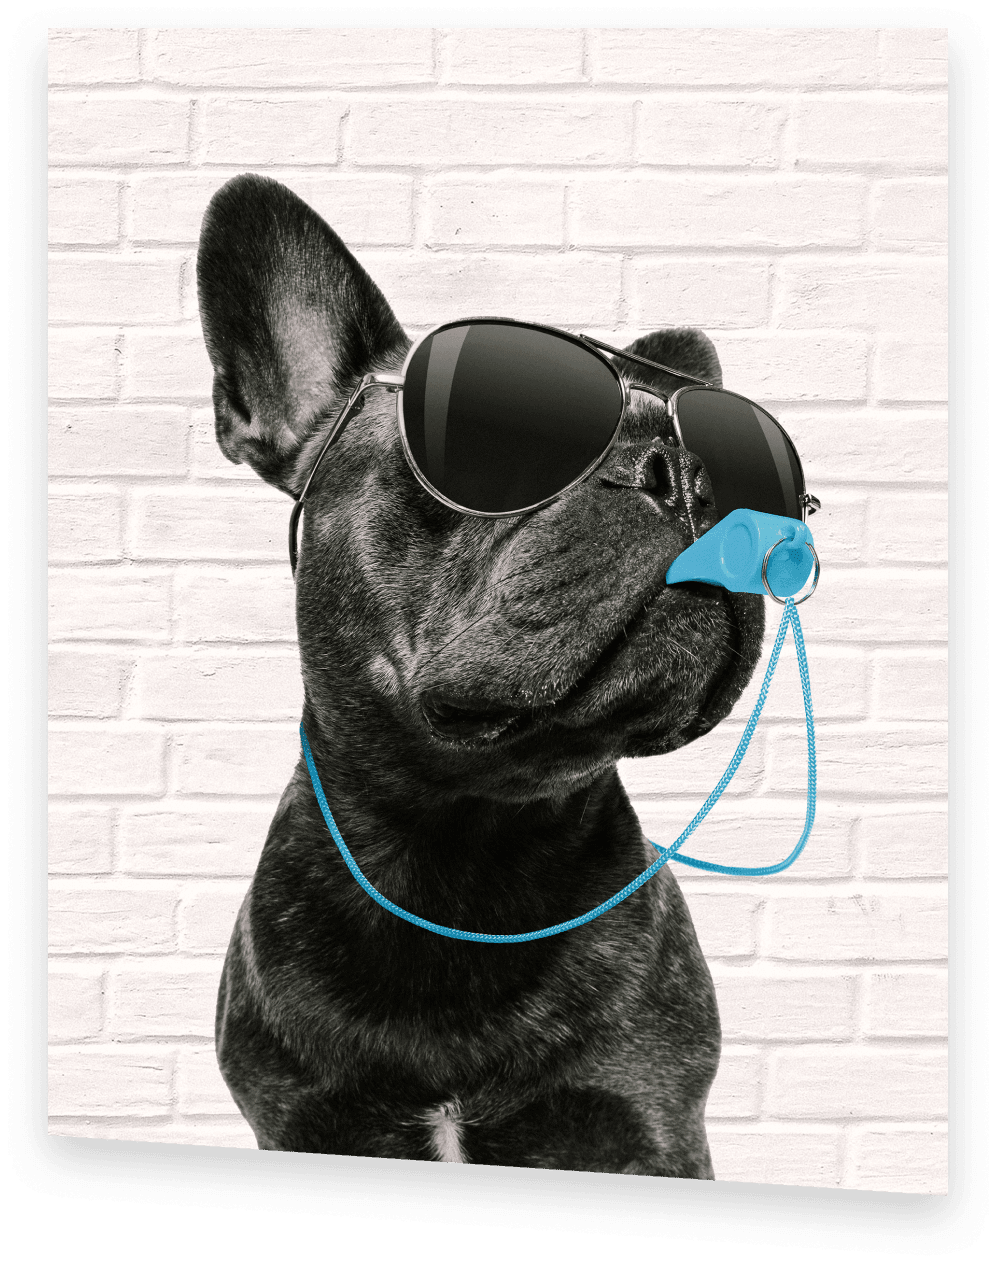 Shmoop's ACT Test Prep Coach, a black french bulldog wearing sunglasses and blowing whistle